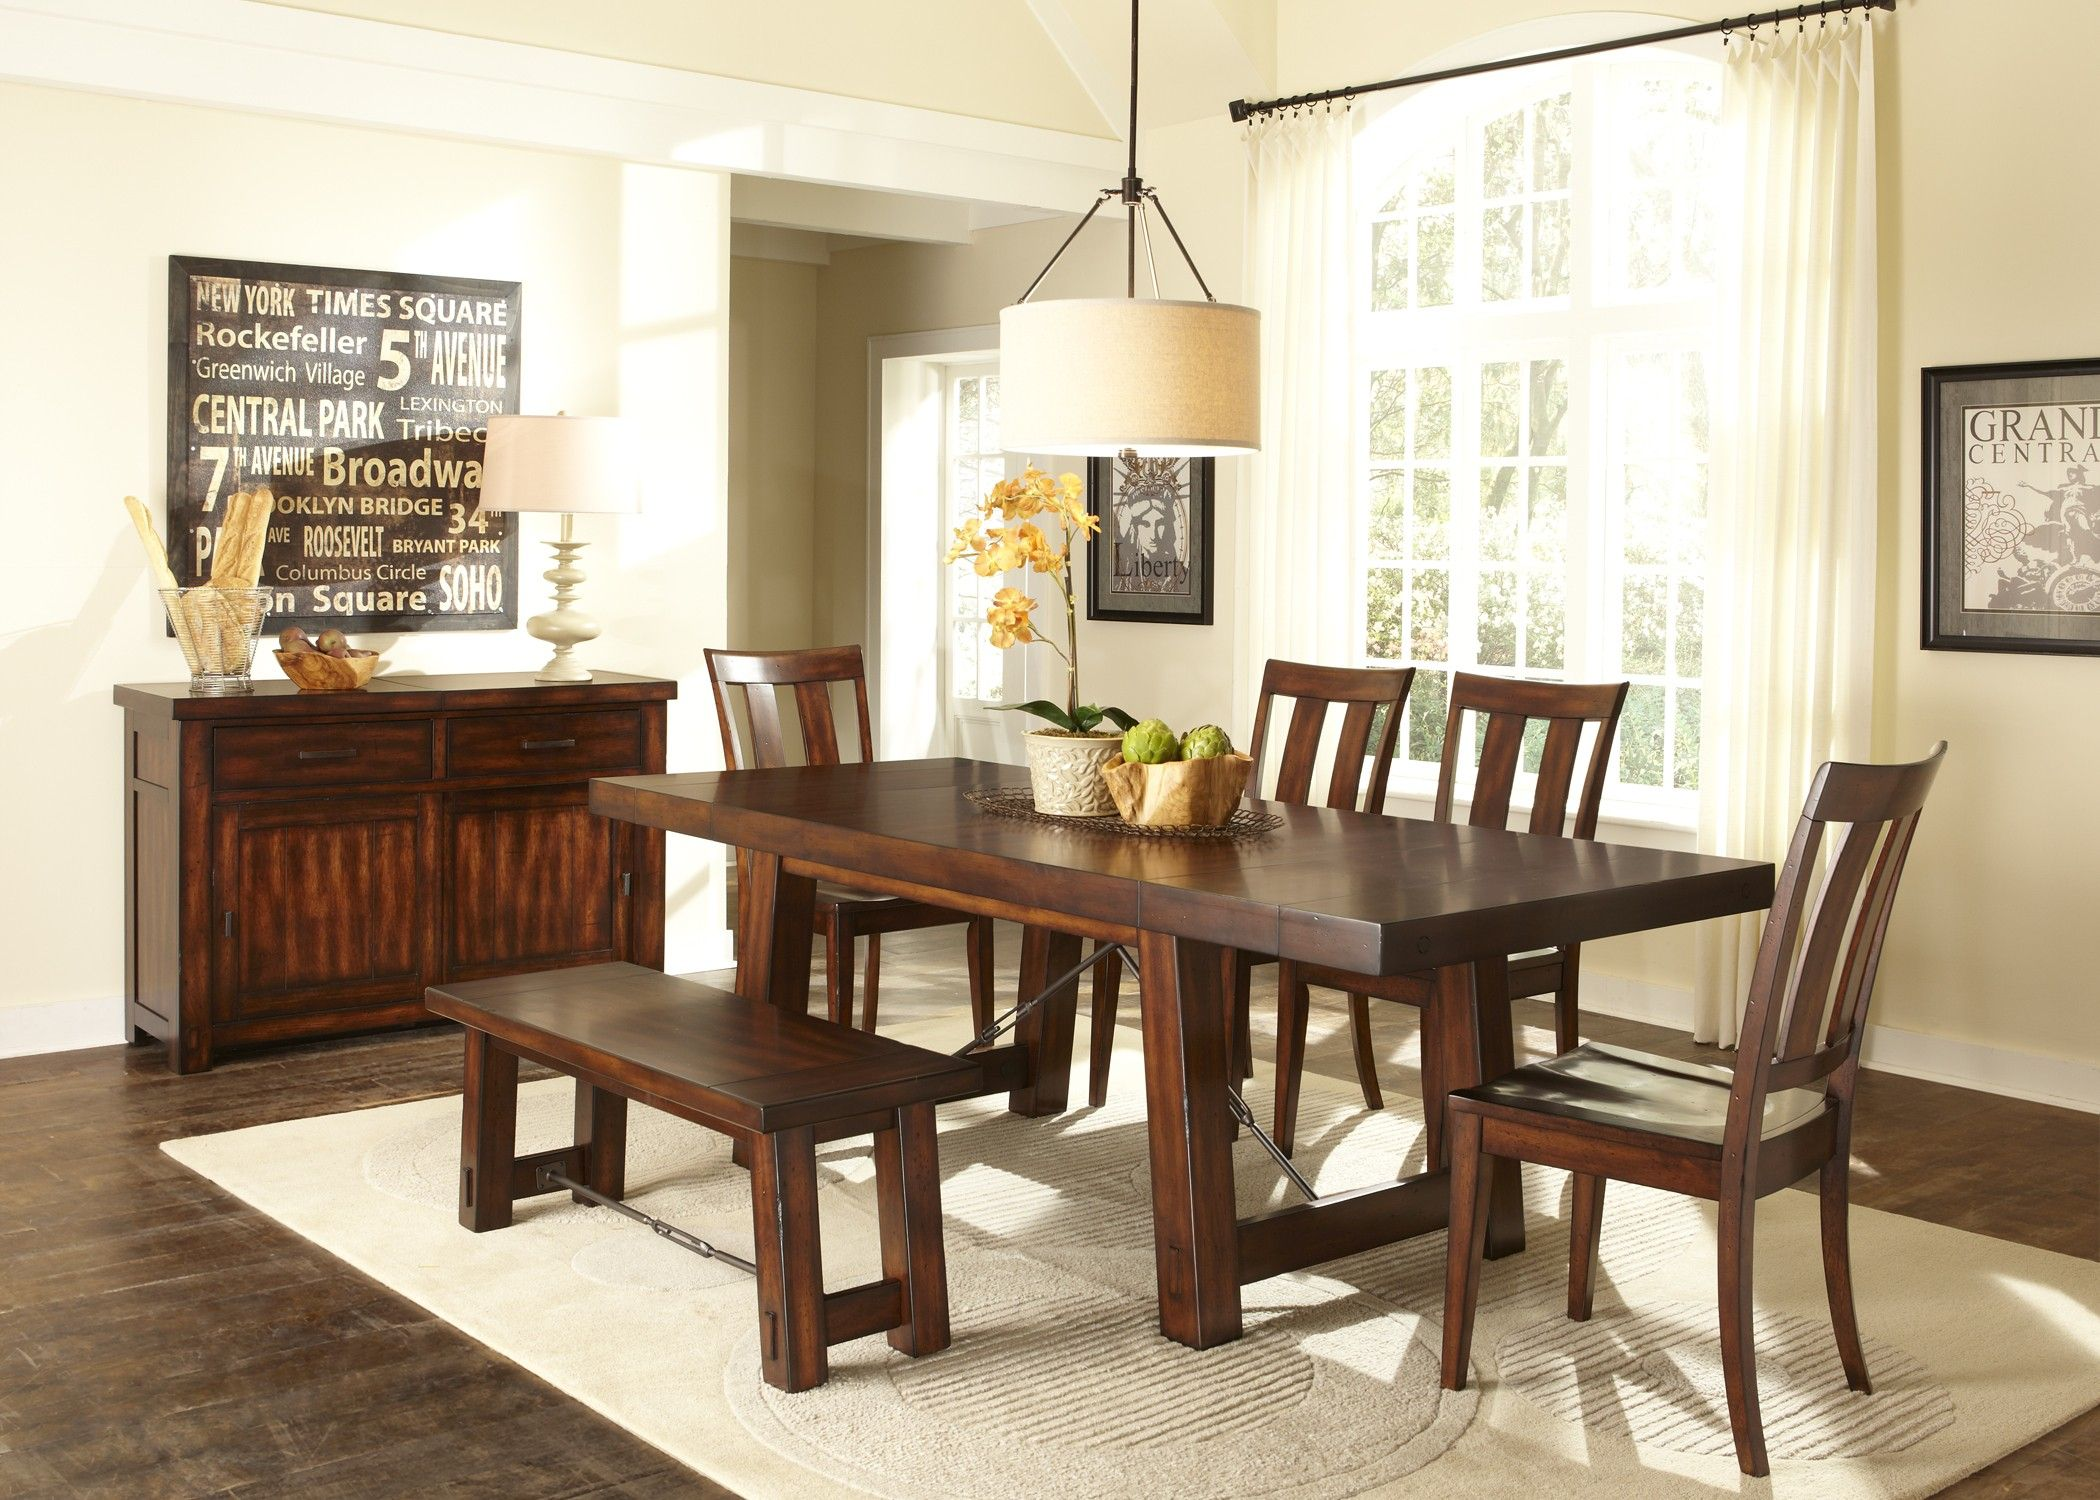 Liberty furniture tahoe casual dining table chairs and bench